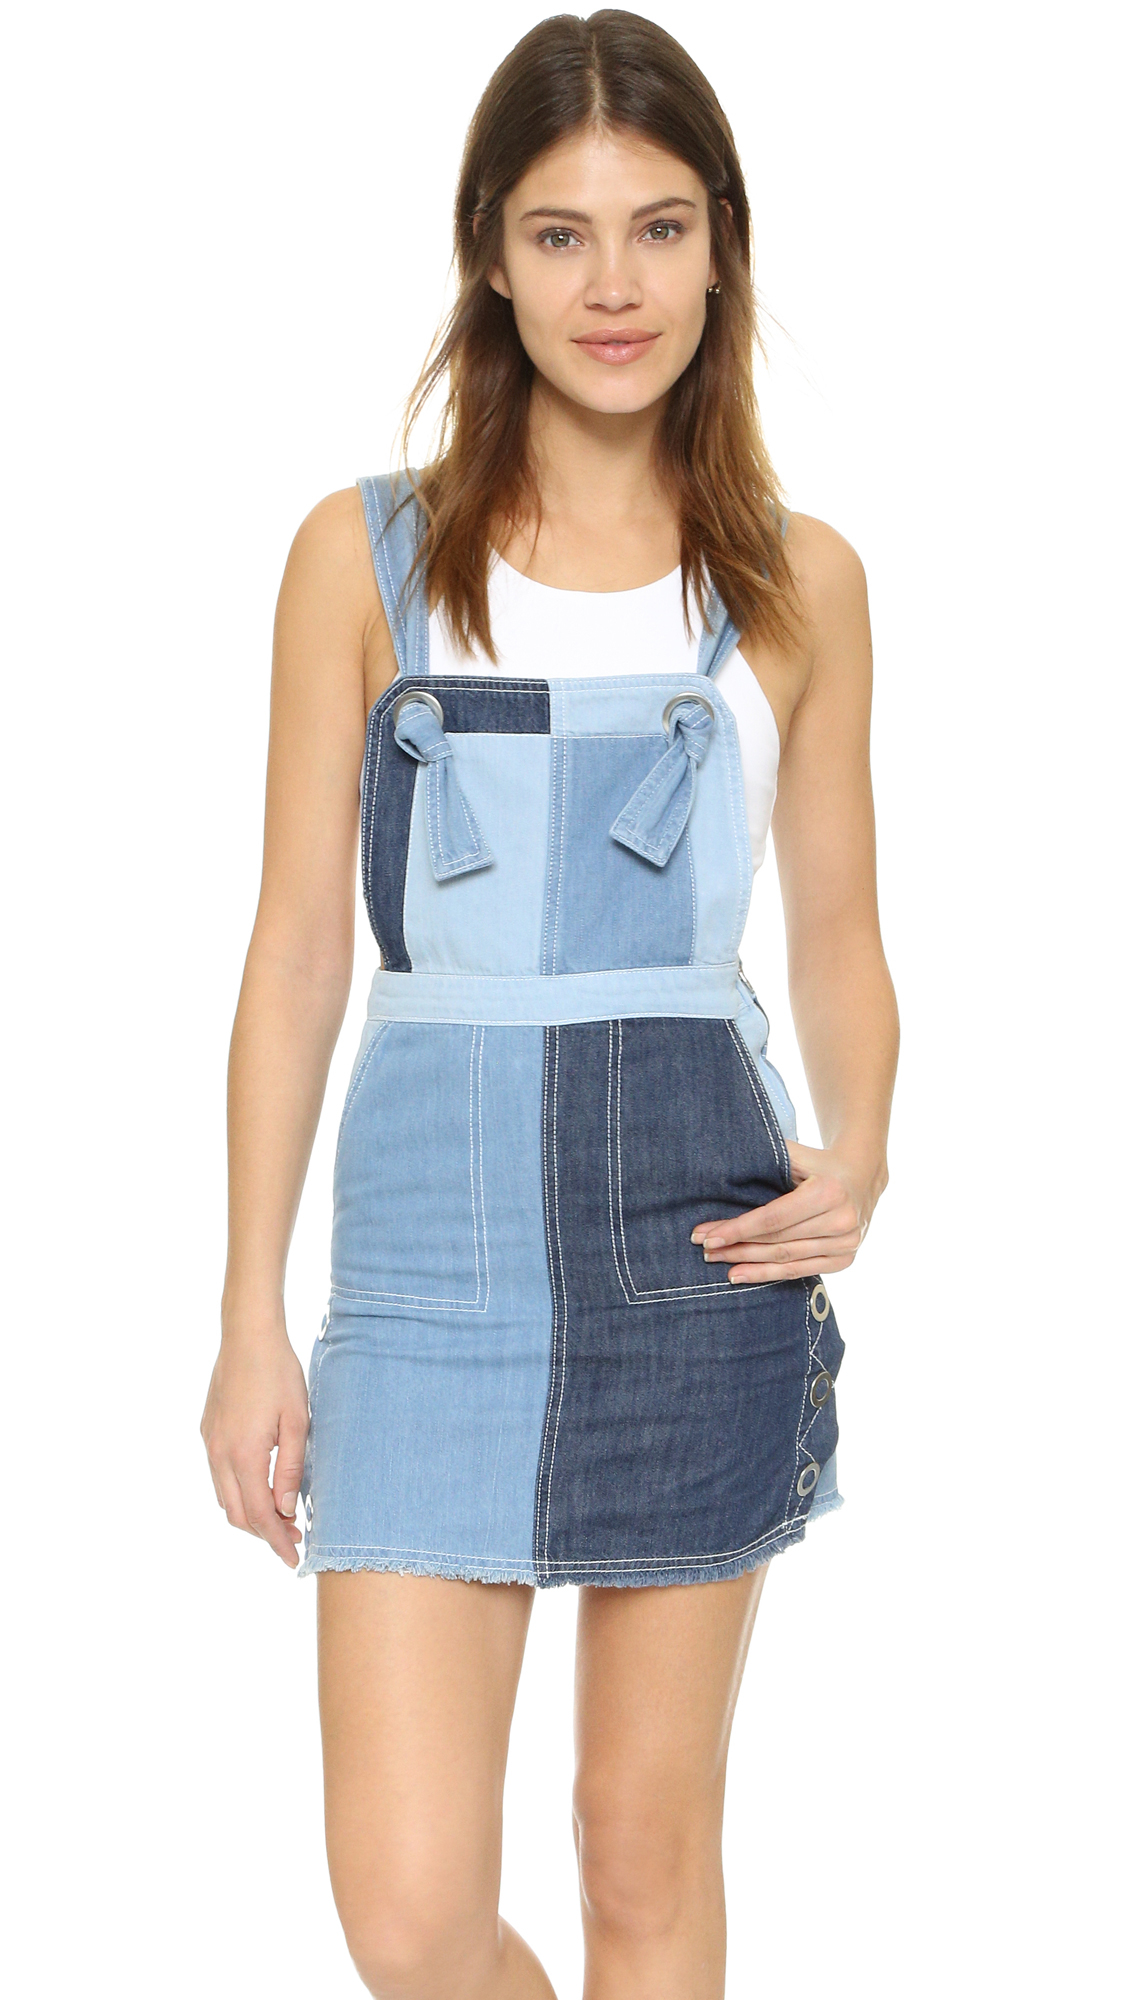 6492cf77f9 Denim Overalls Skirt Outfit